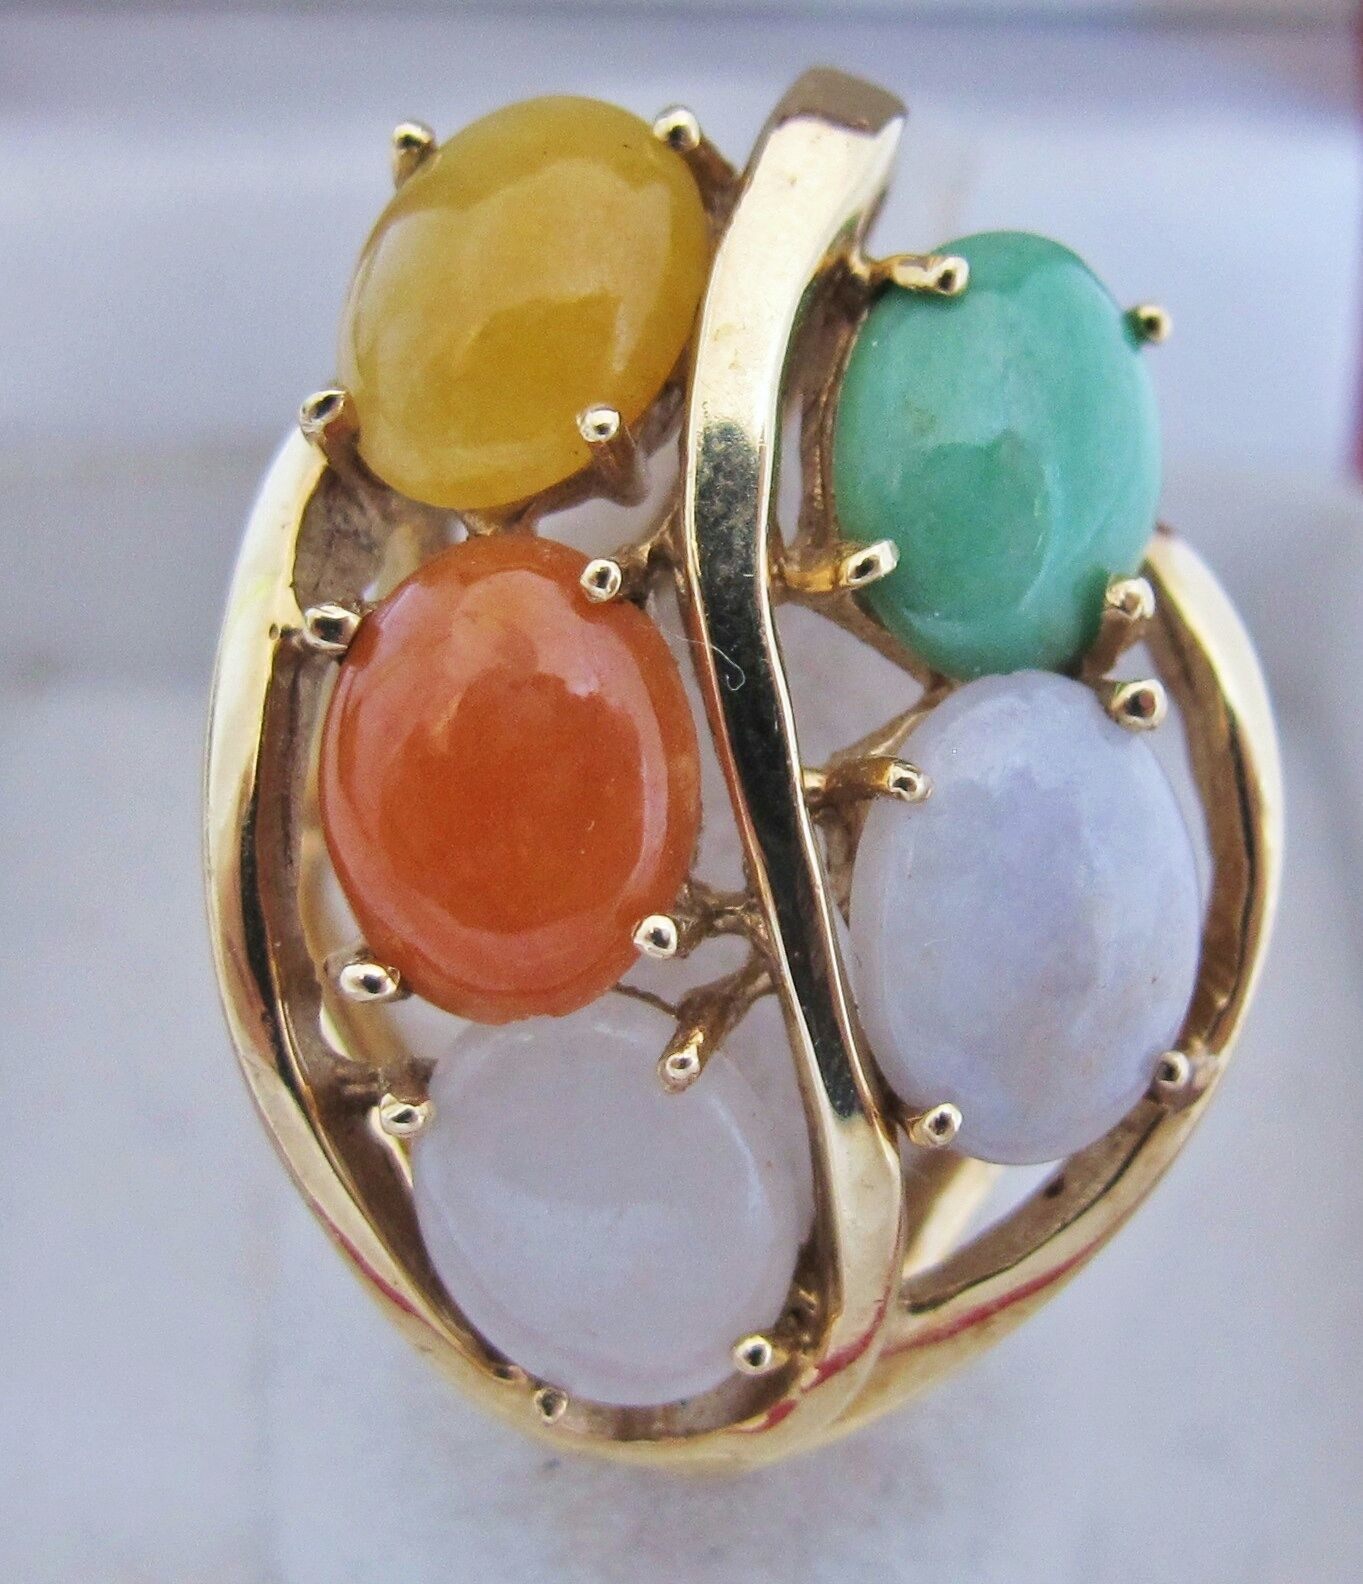 Big 14K Yellow gold & Multicolord JADEITE Jade Ladies Ring (11.3 grams, size 6)